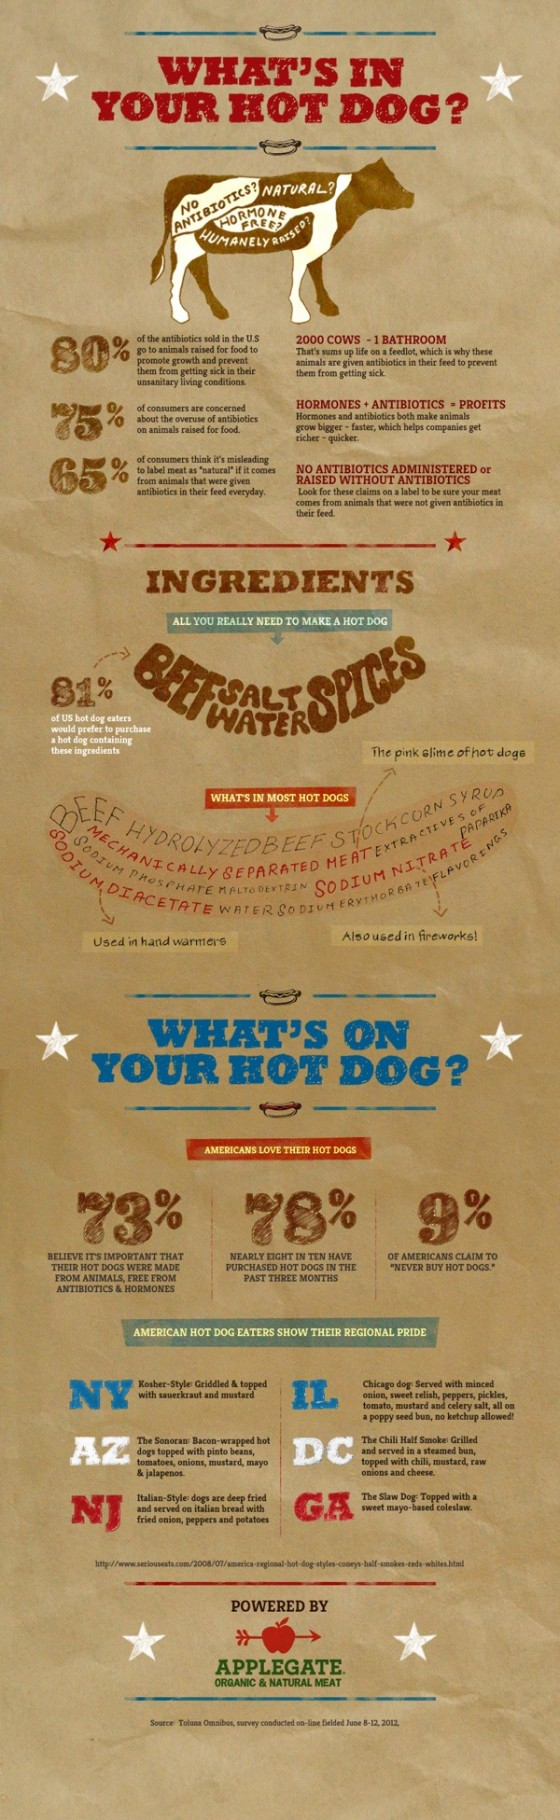 Whats in HotDog Infographic 560x1820